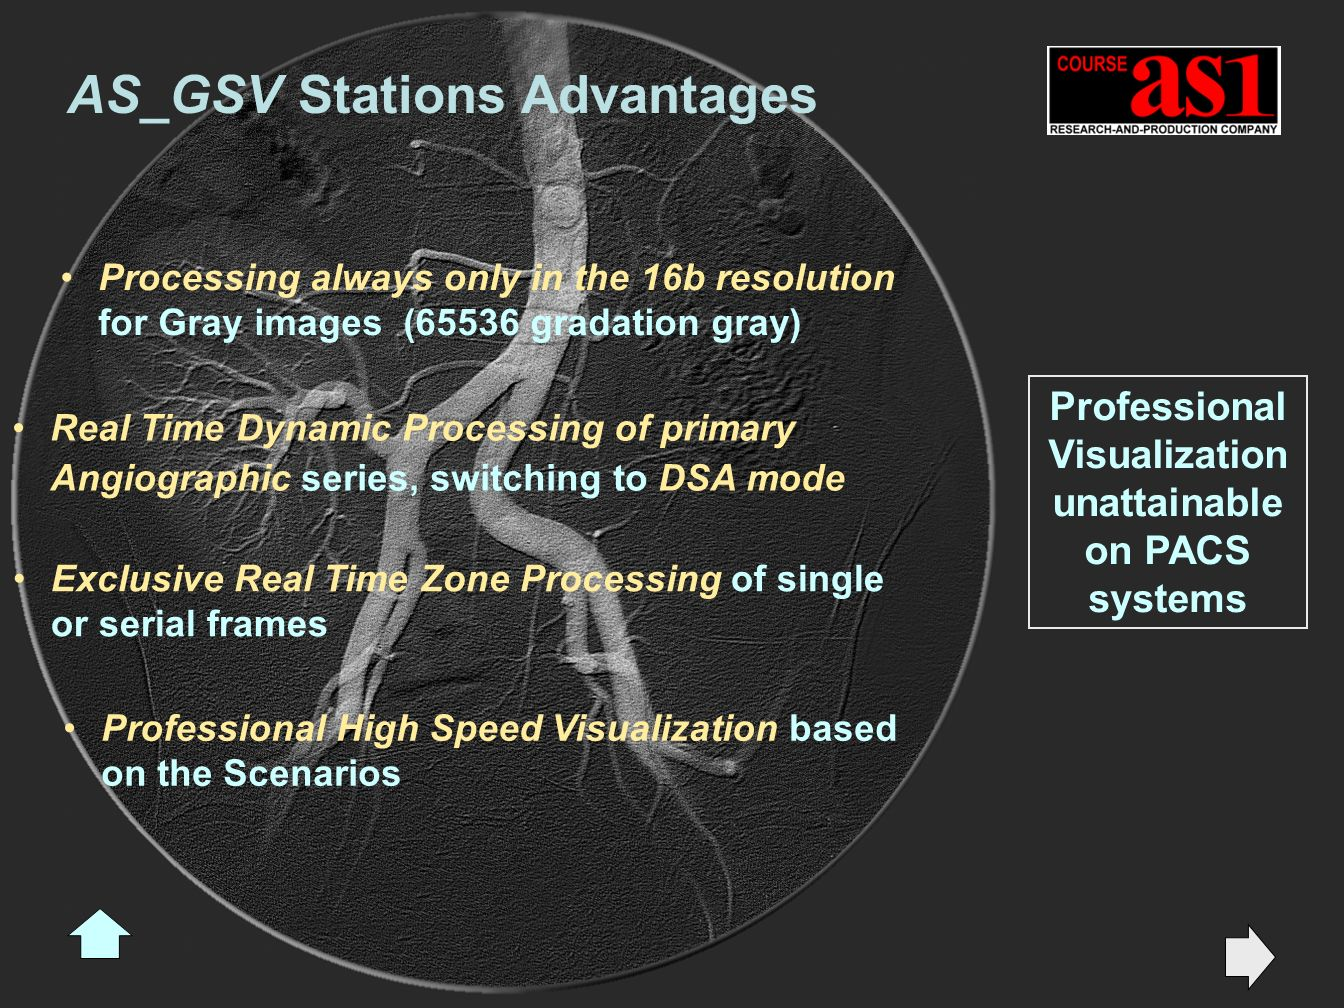 AS_GSV Stations Advantages Real Time Dynamic Processing of primary Angiographic series, switching to DSA mode Exclusive Real Time Zone Processing of single or serial frames Professional High Speed Visualization based on the Scenarios Processing always only in the 16b resolution for Gray images (65536 gradation gray) Professional Visualization unattainable on PACS systems